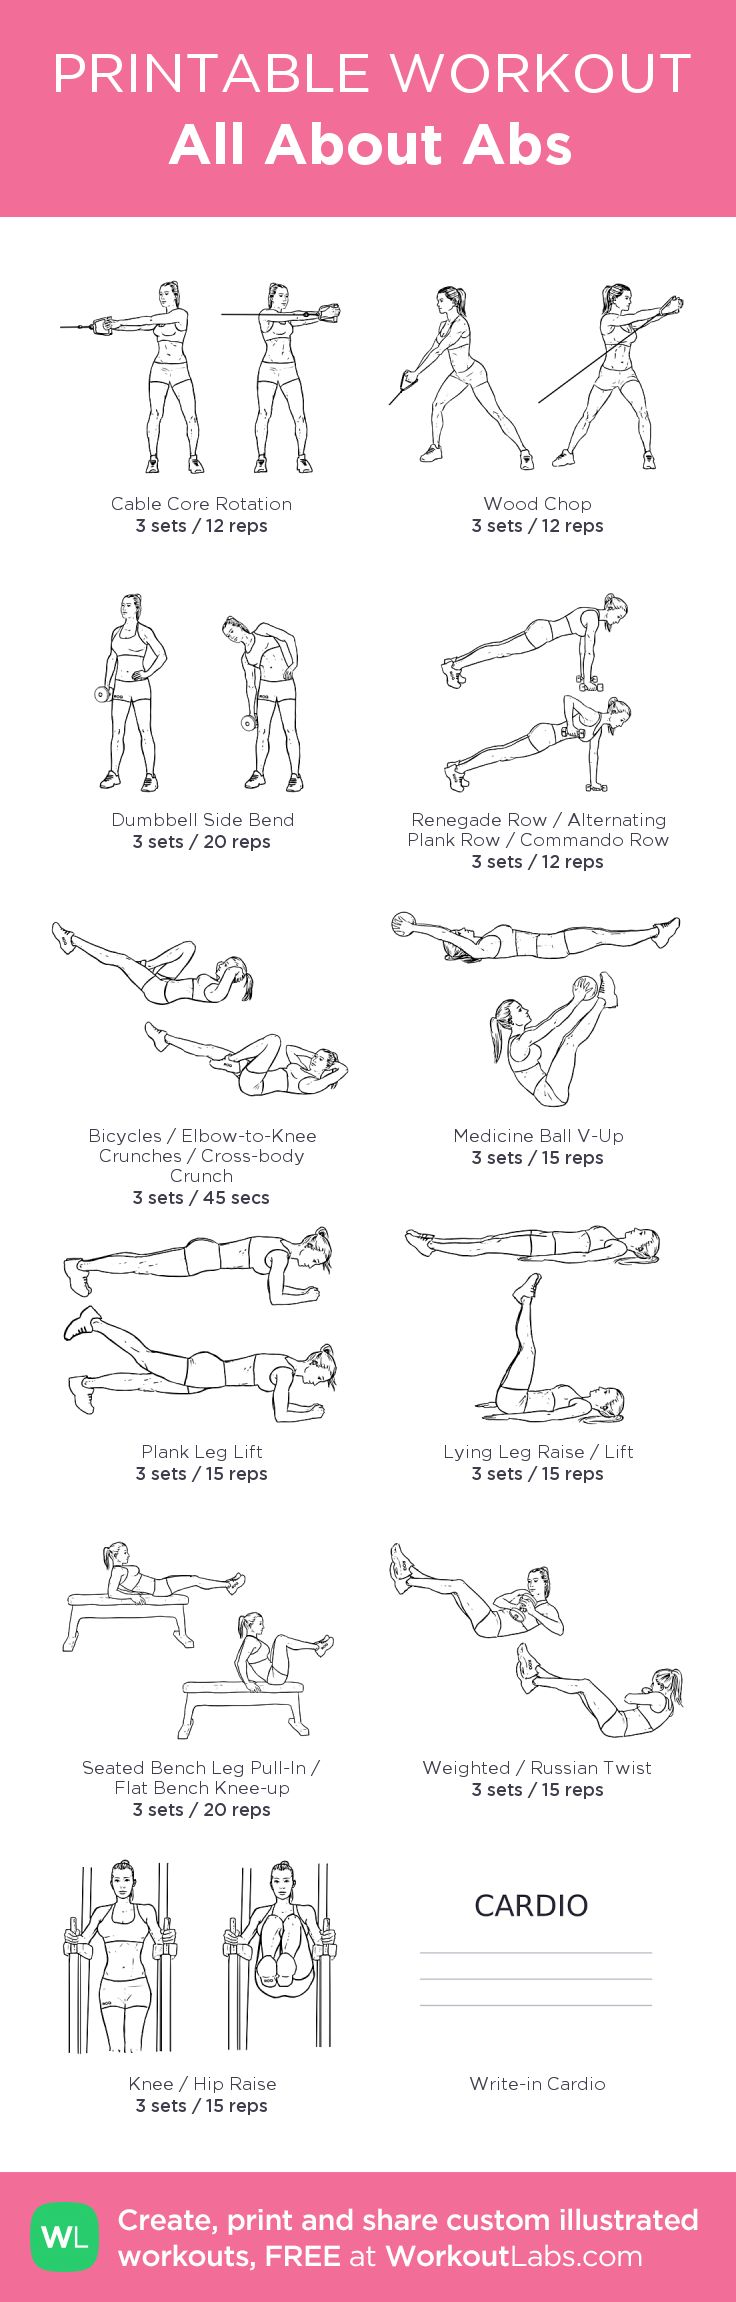 All About Abs – my custom workout created at WorkoutLabs.com • Click through to download as printable PDF! #customworkout